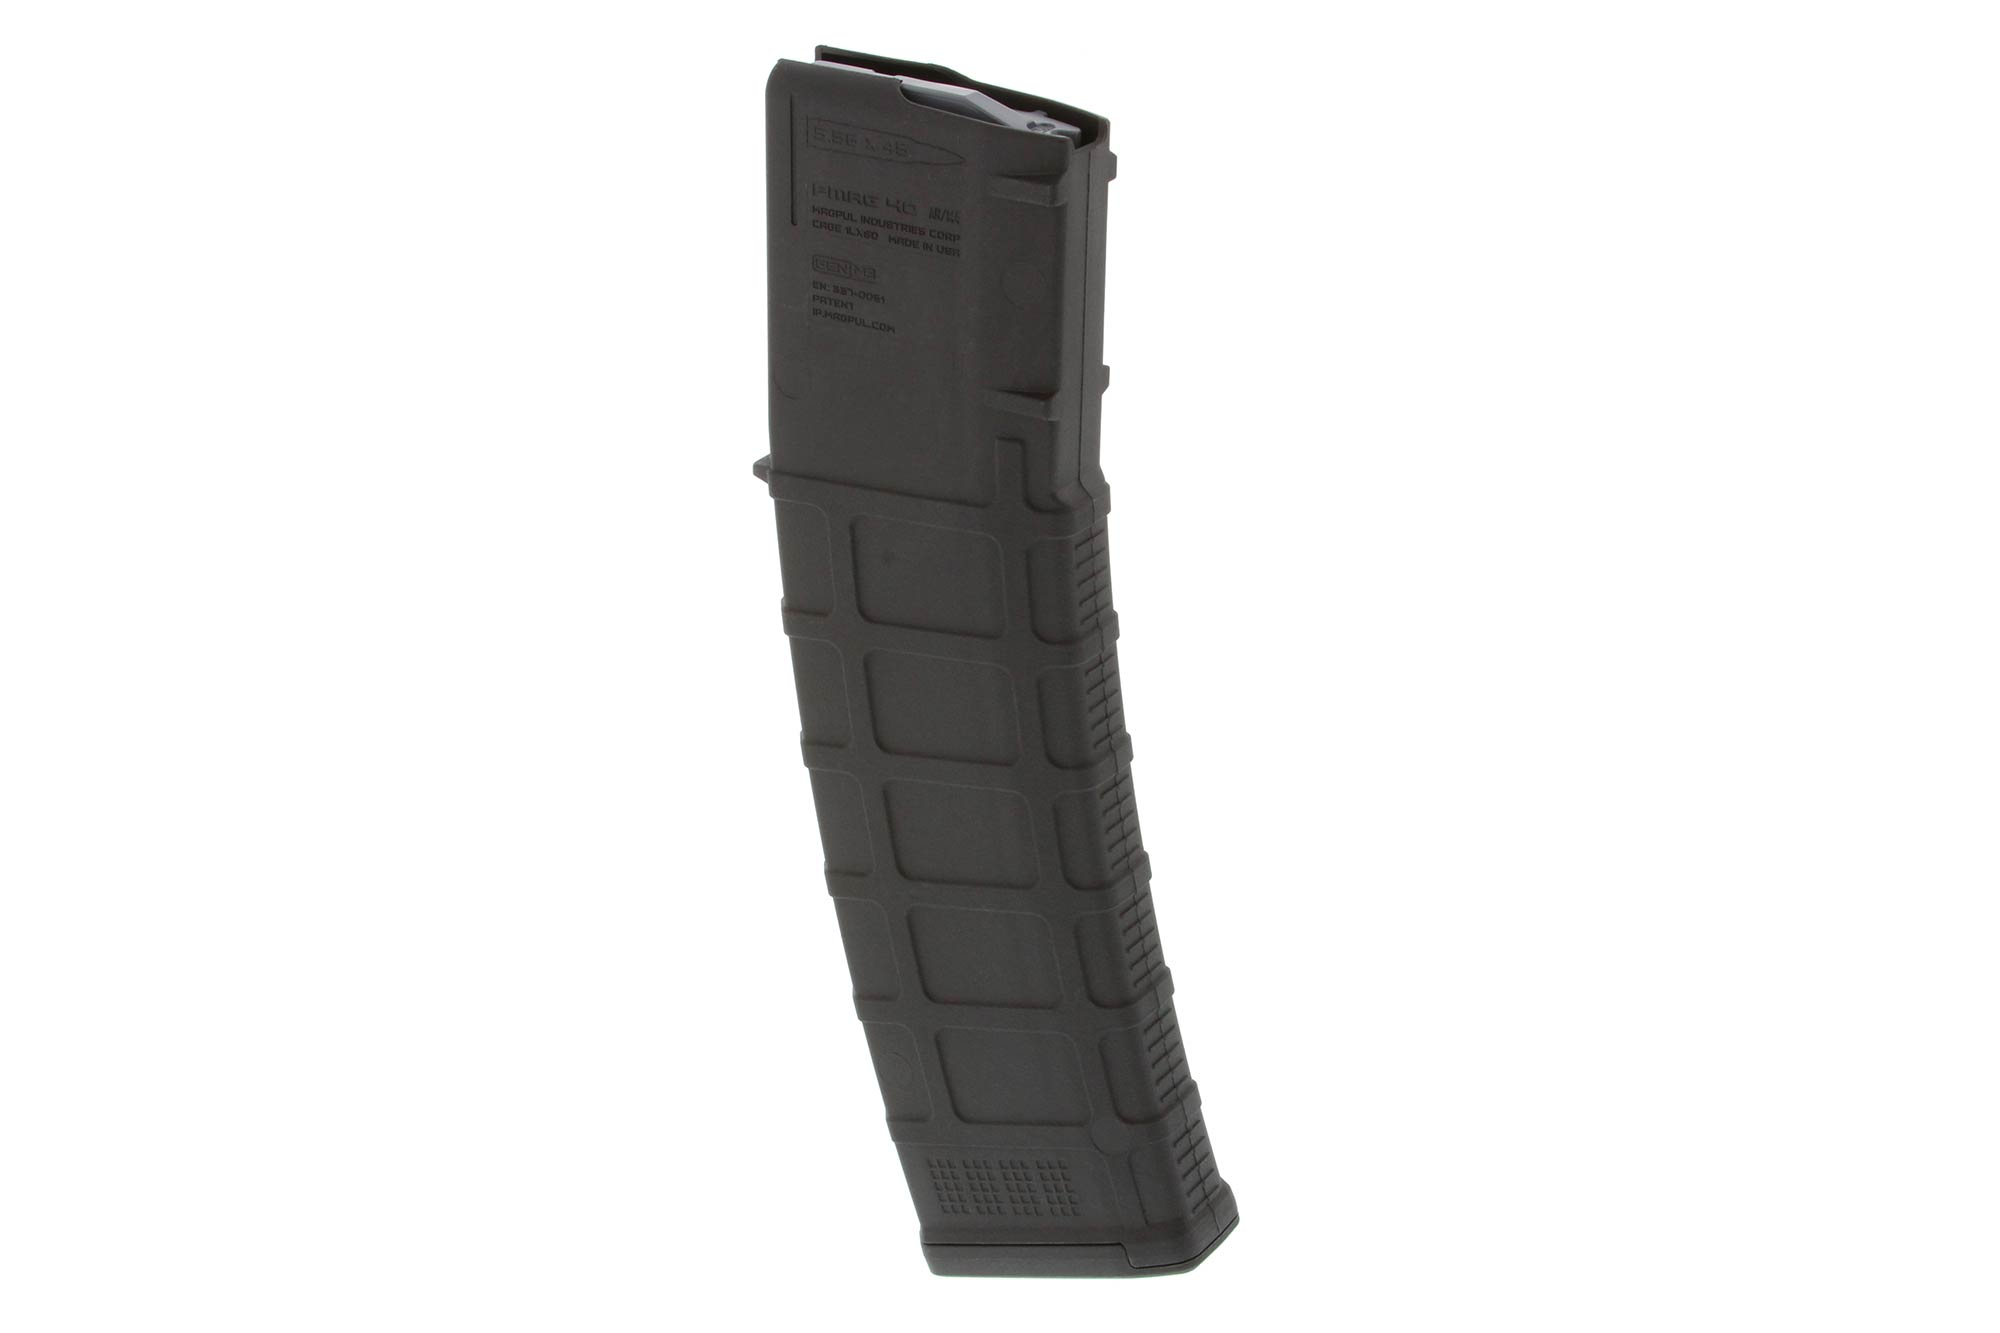 The Magpul 40 round PMAG AR15 magazine features a self lubricating anti-tilt follower